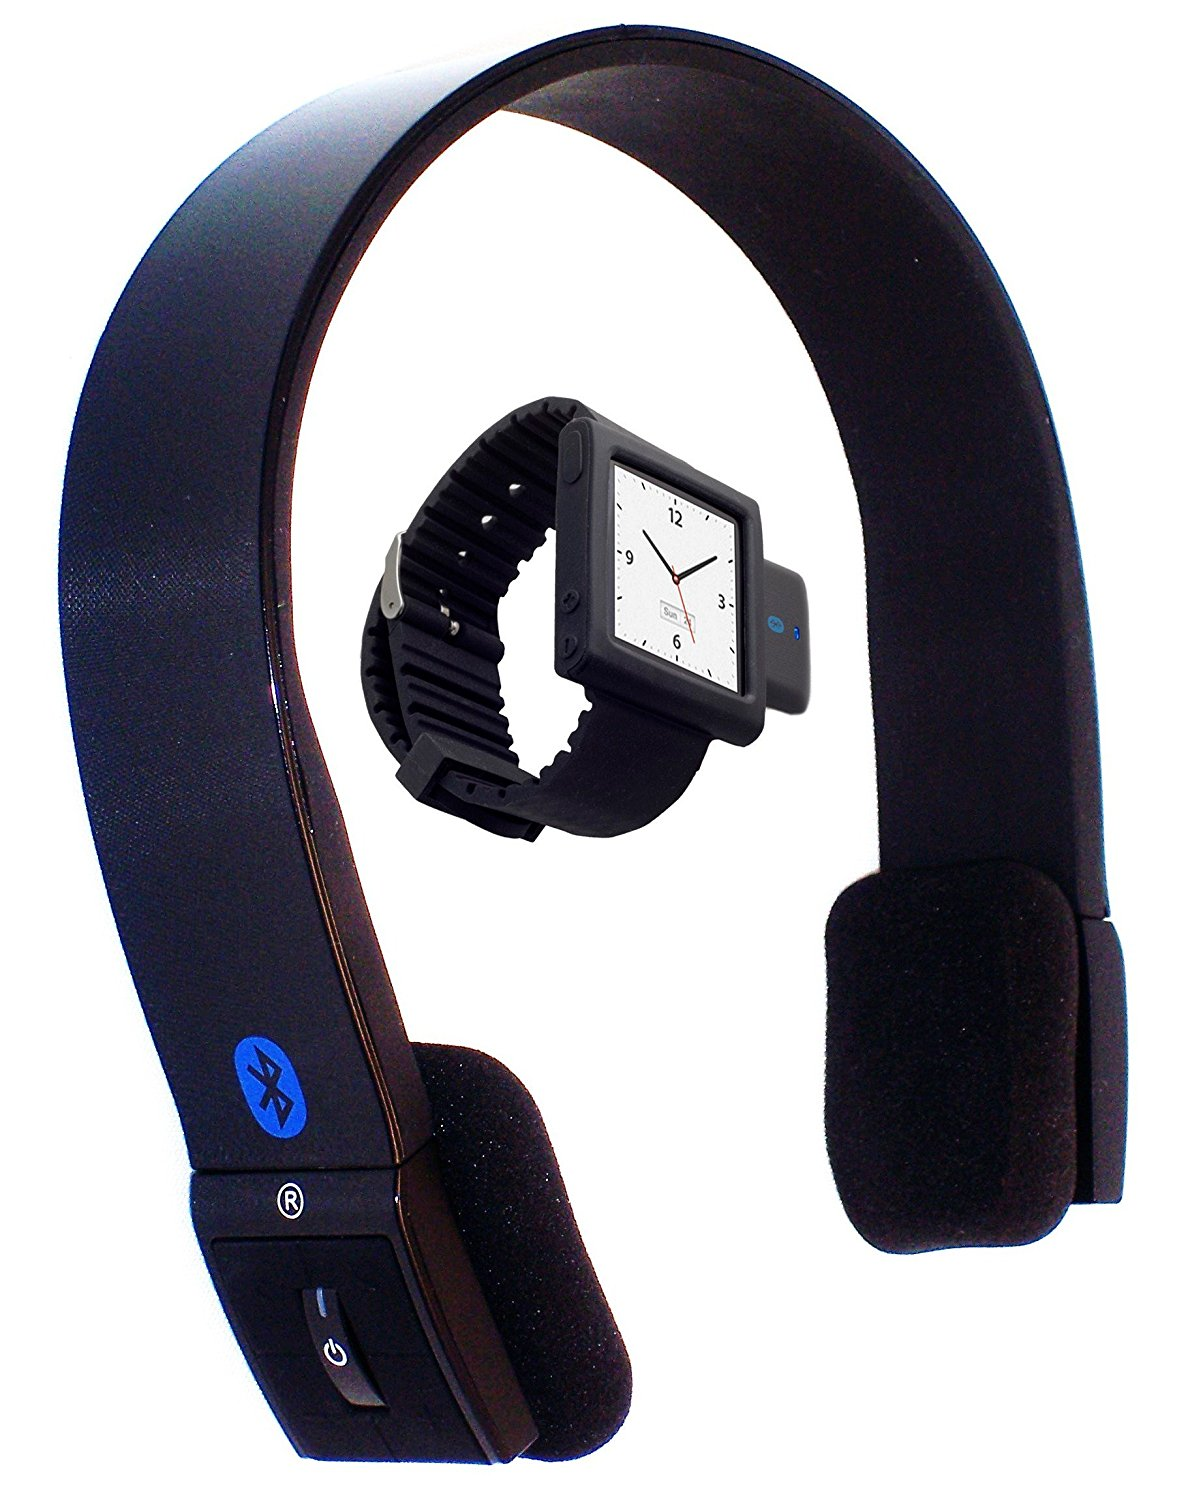 i10sWatchS10: The Ultimate Watch + Stereo Headset . i10s Luxurious Black Tiny Bluetooth iPod Transmitter, + iWatch Black iPod Nano 6G wrist band, + S10 EDR Bluetooth Stereo Headset (iPod Nano Not included).